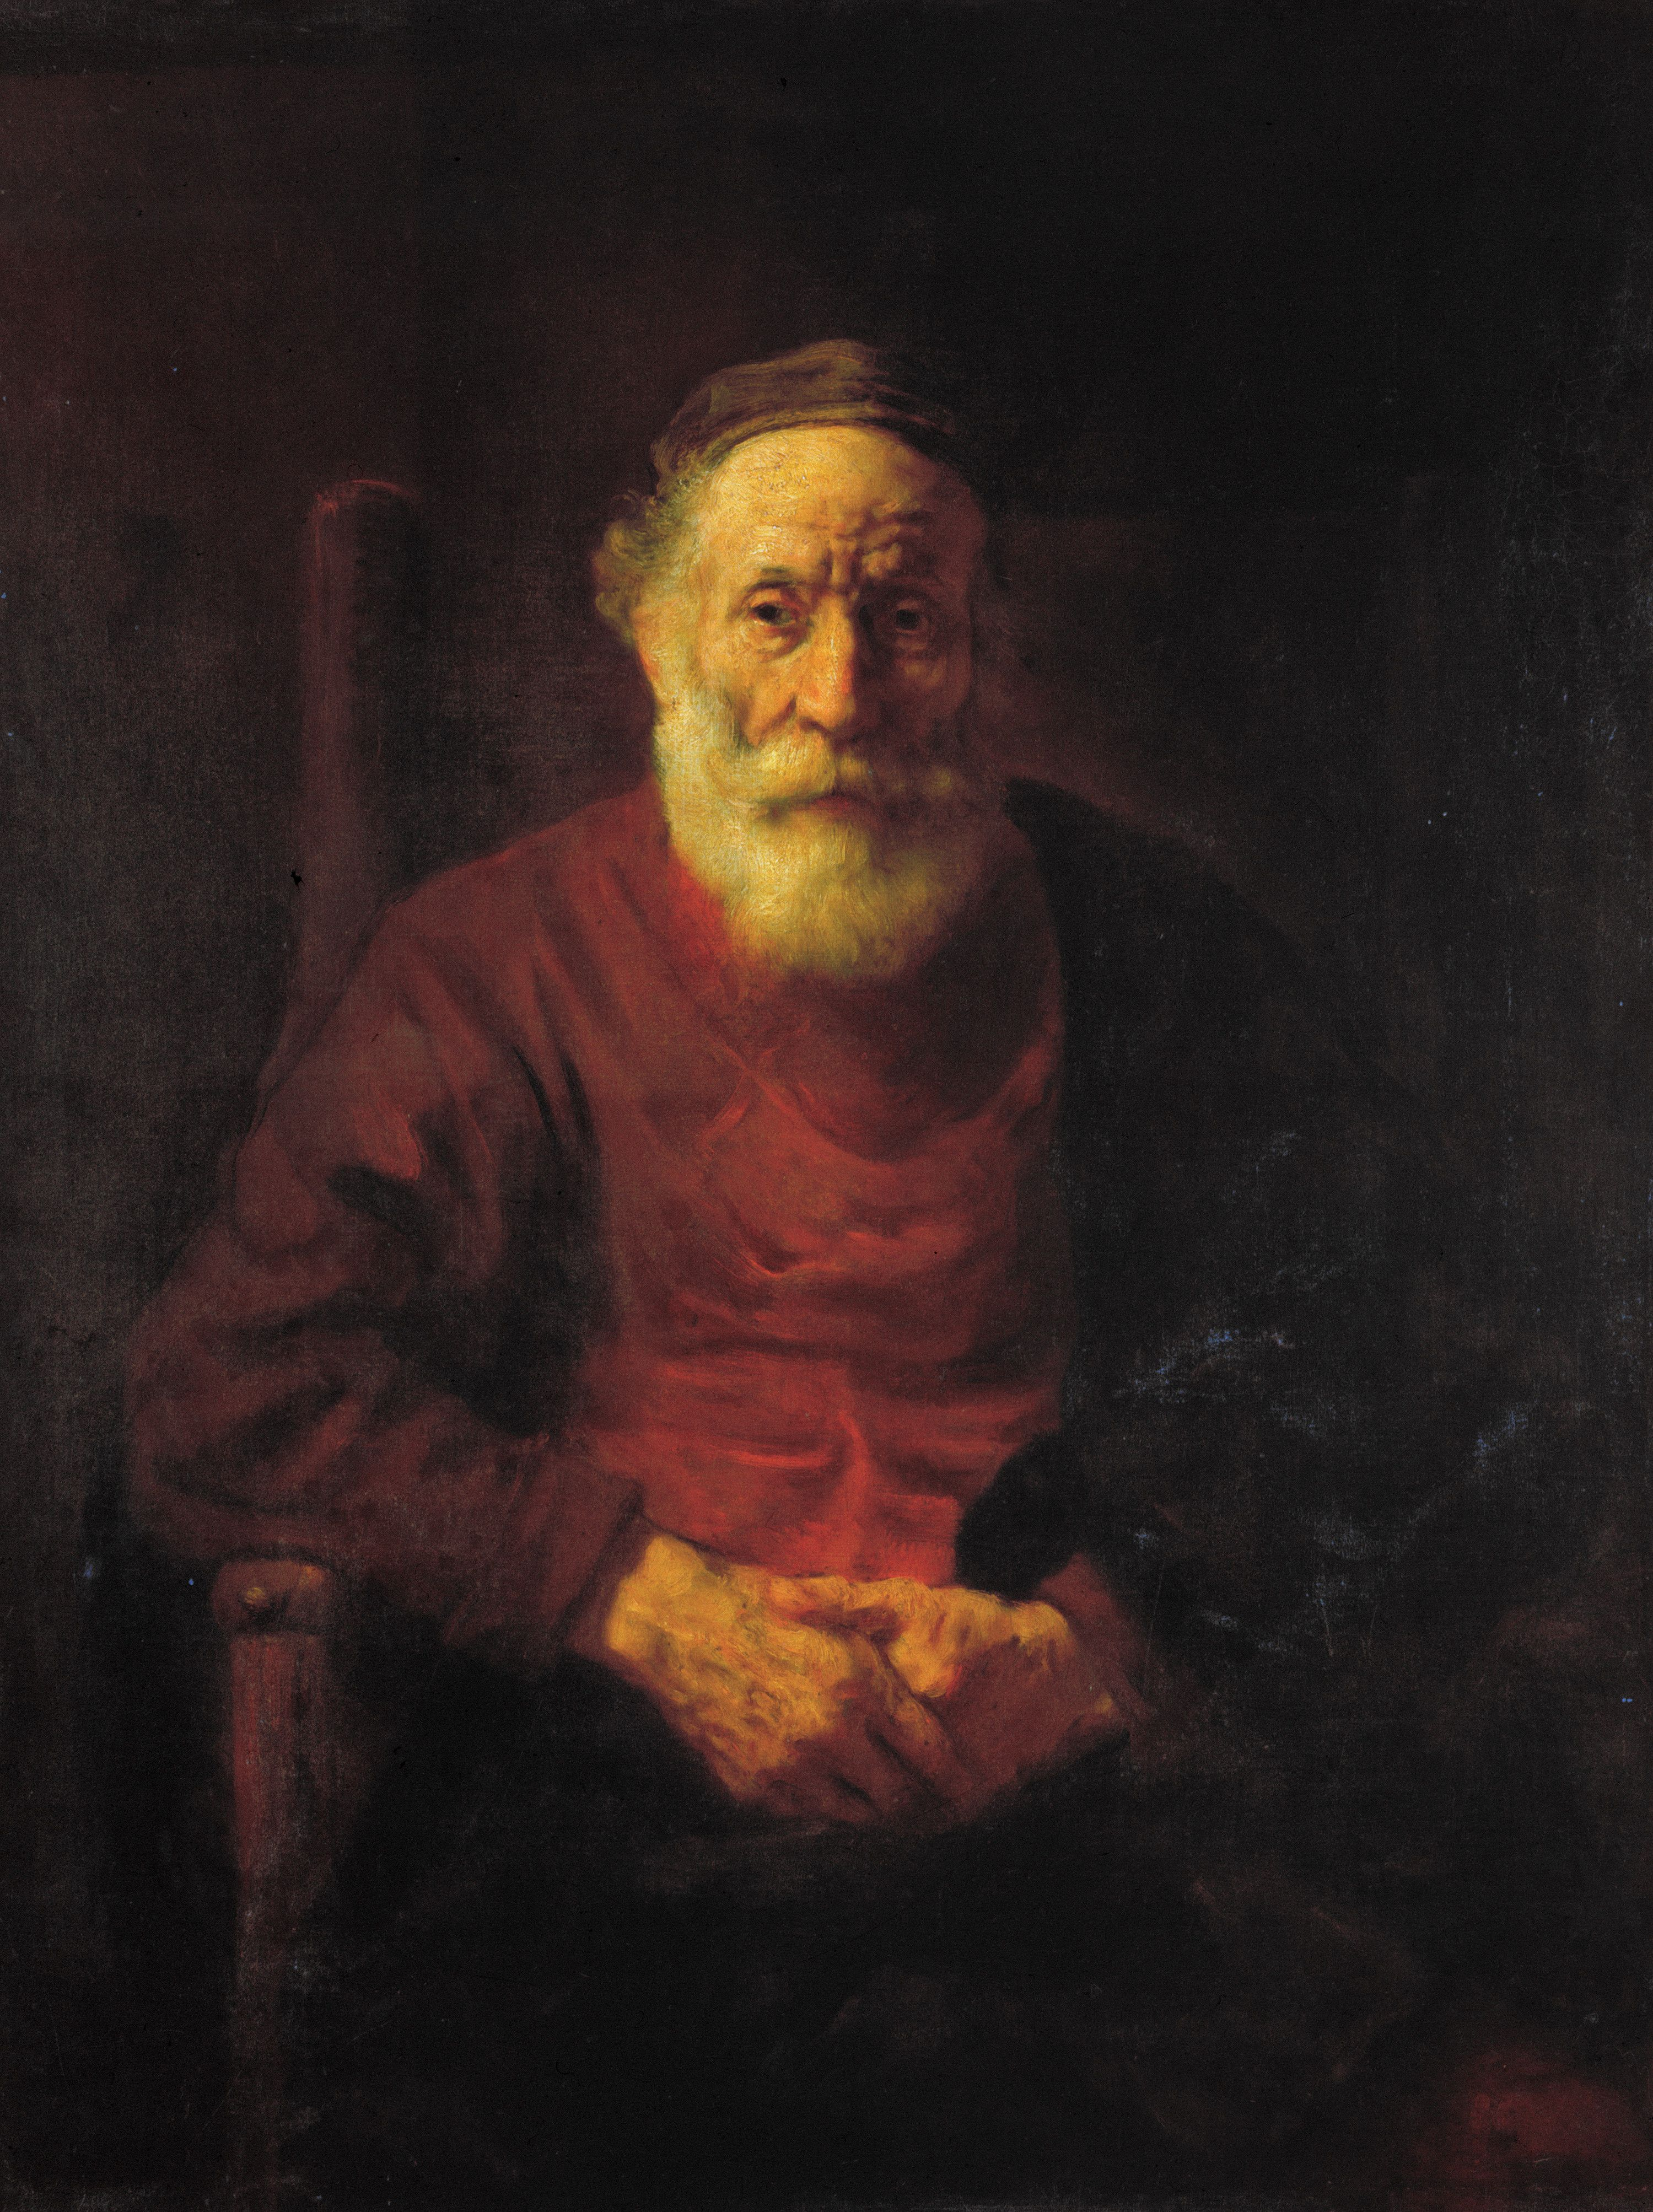 Rembrandt_Harmenszoon_van_Rijn_-_An_Old_Man_in_Red.JPG (2999×4013)